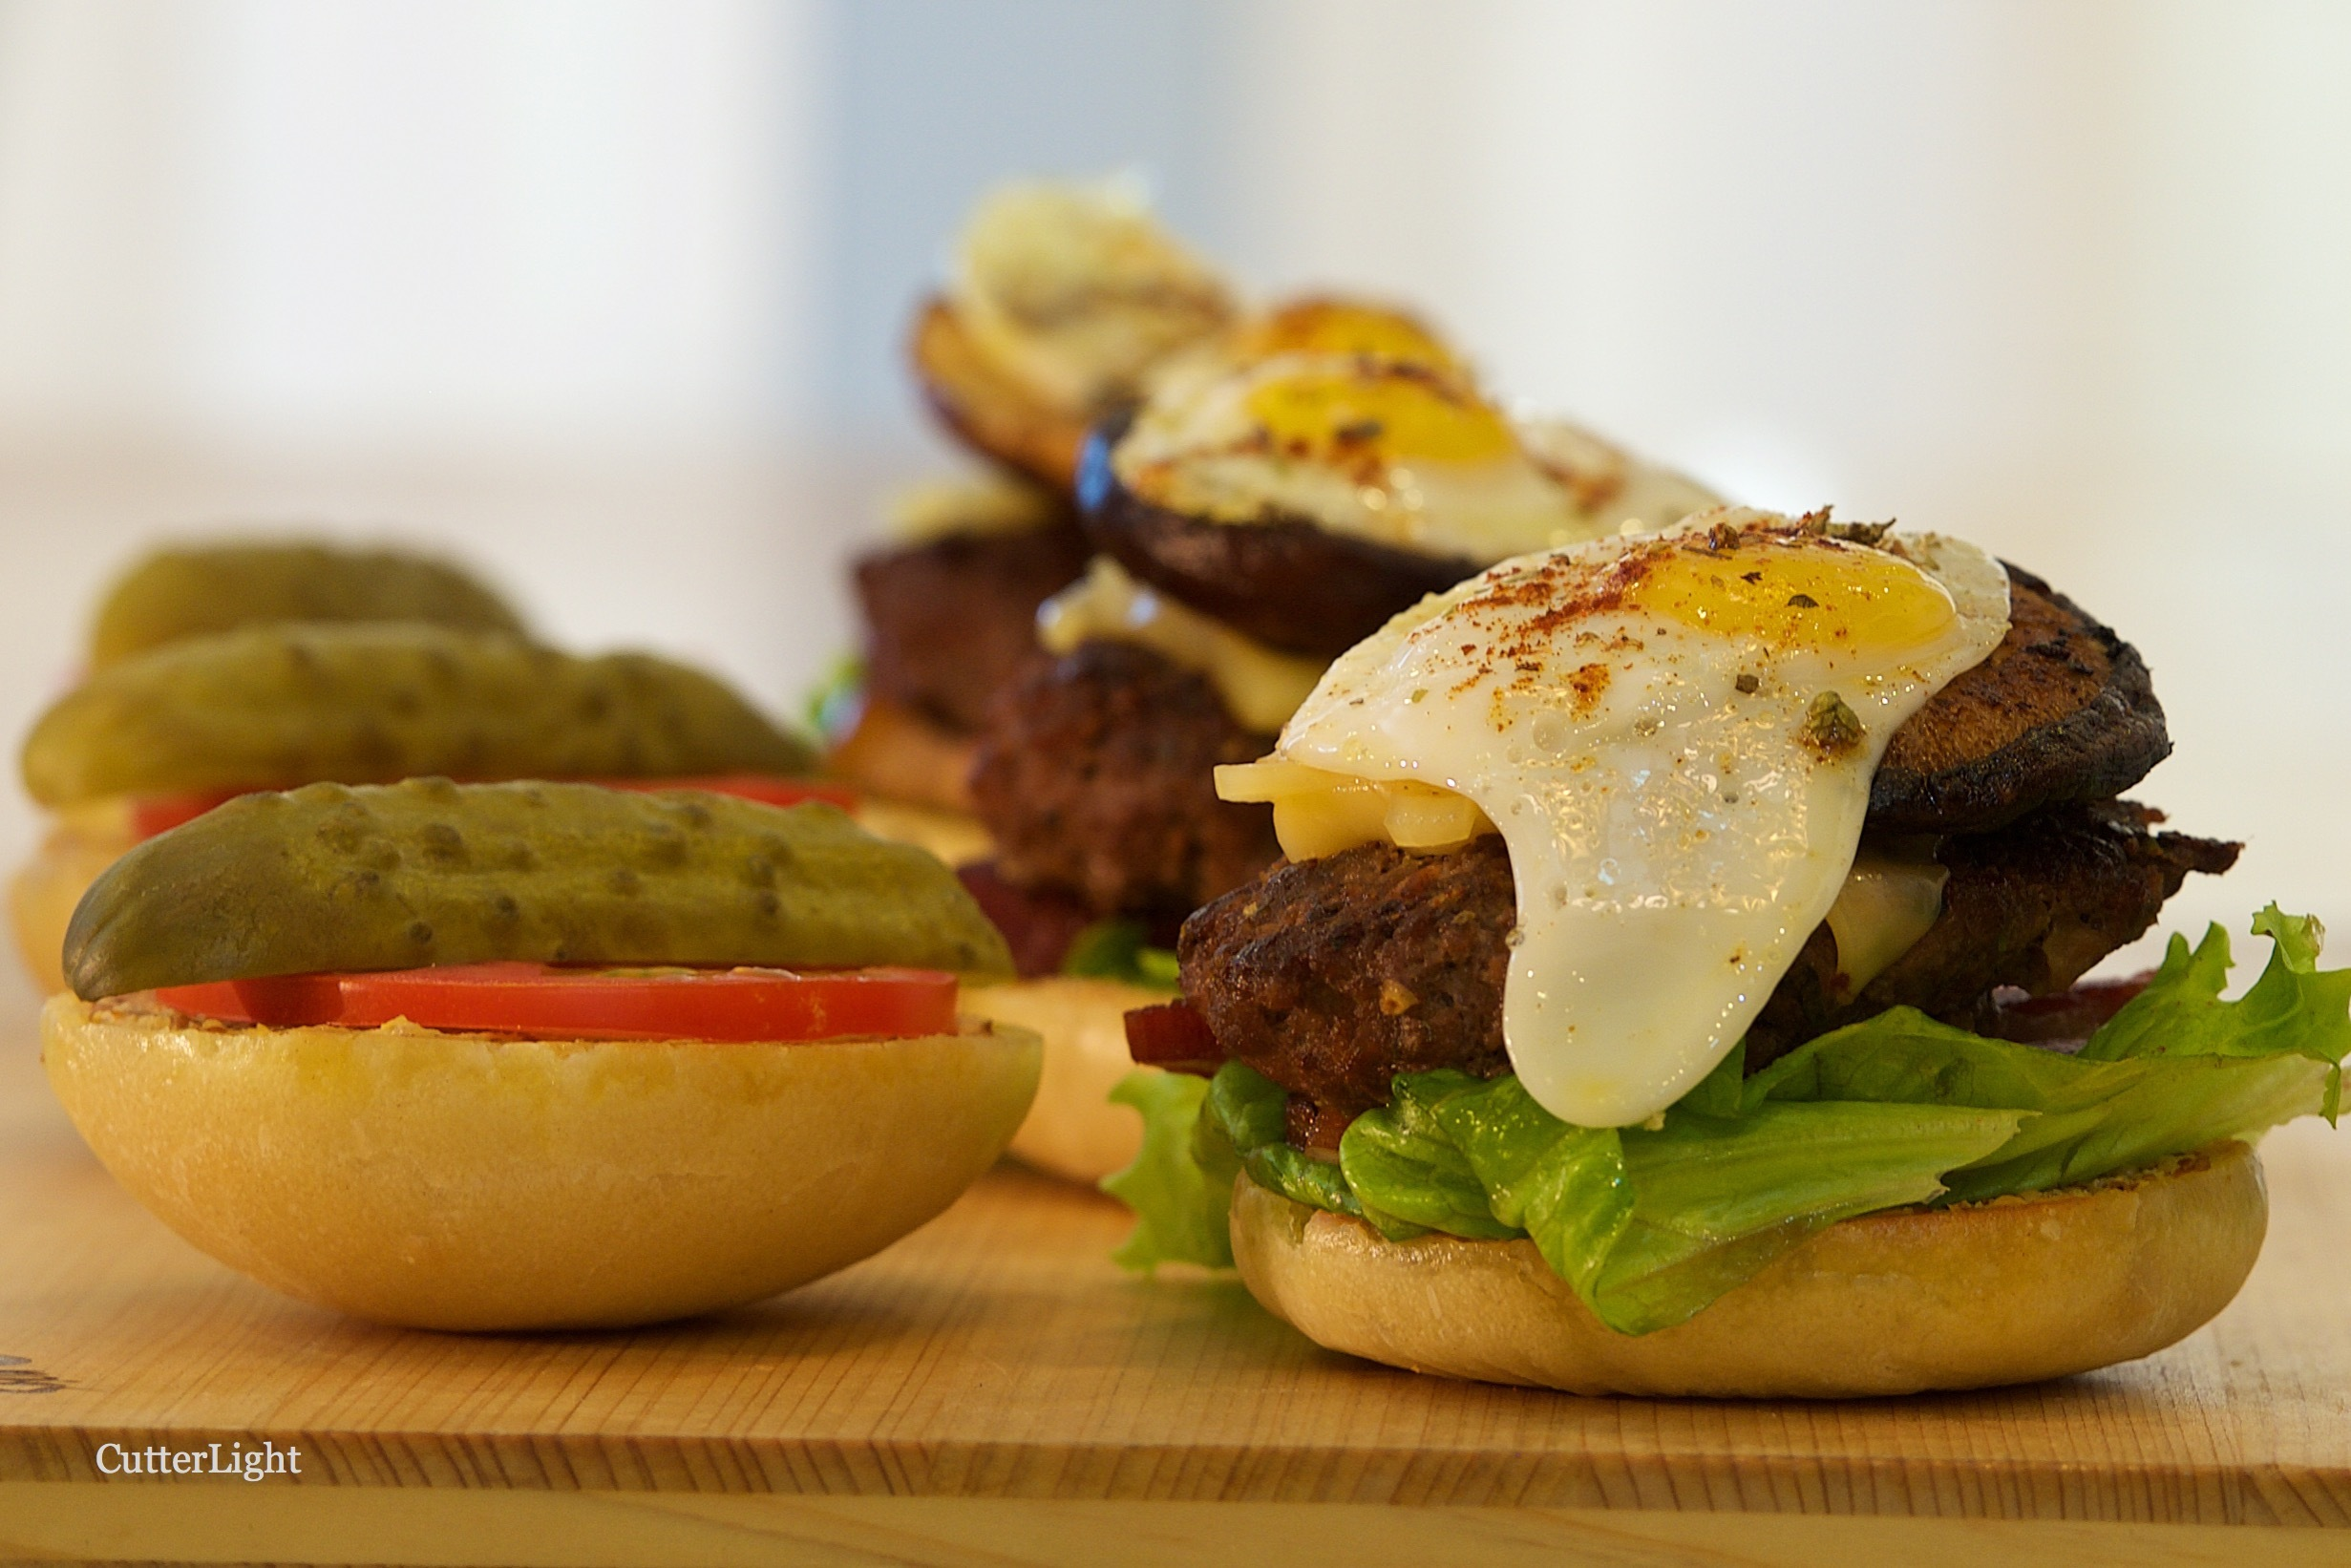 4th of July Appetizer or Anytime Snack: Who's Up for a Quail Egg Slider?